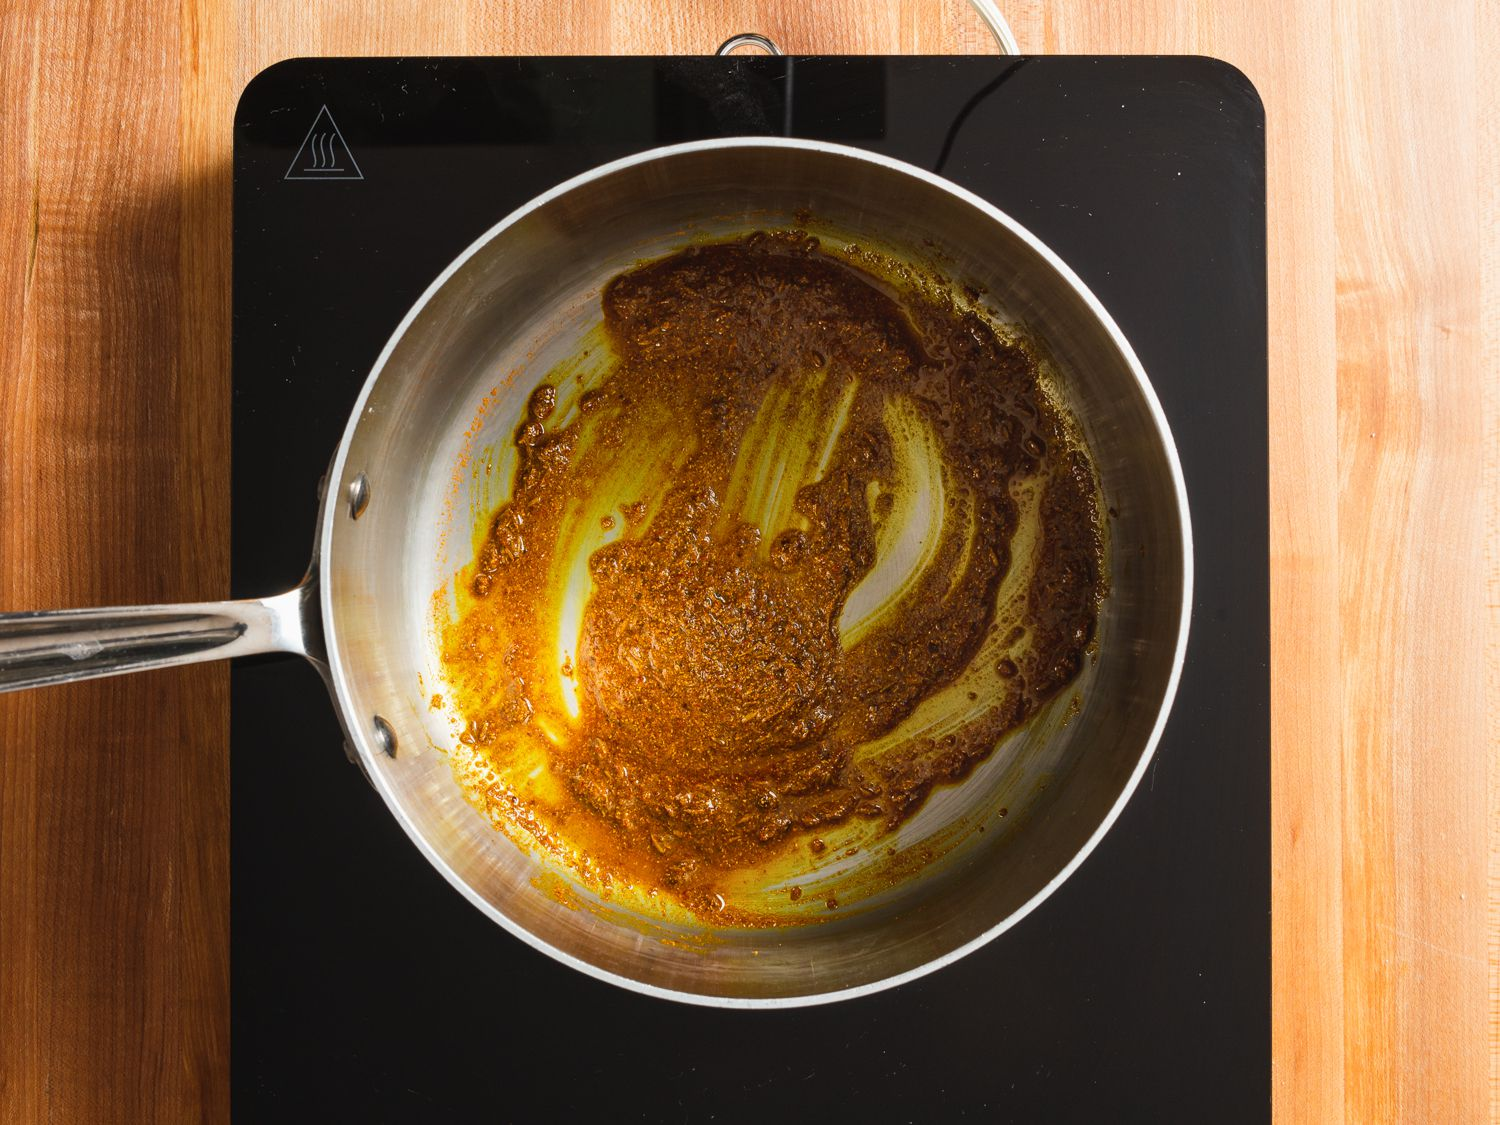 Spices for potato samosa filling being bloomed in oil in a saucepan